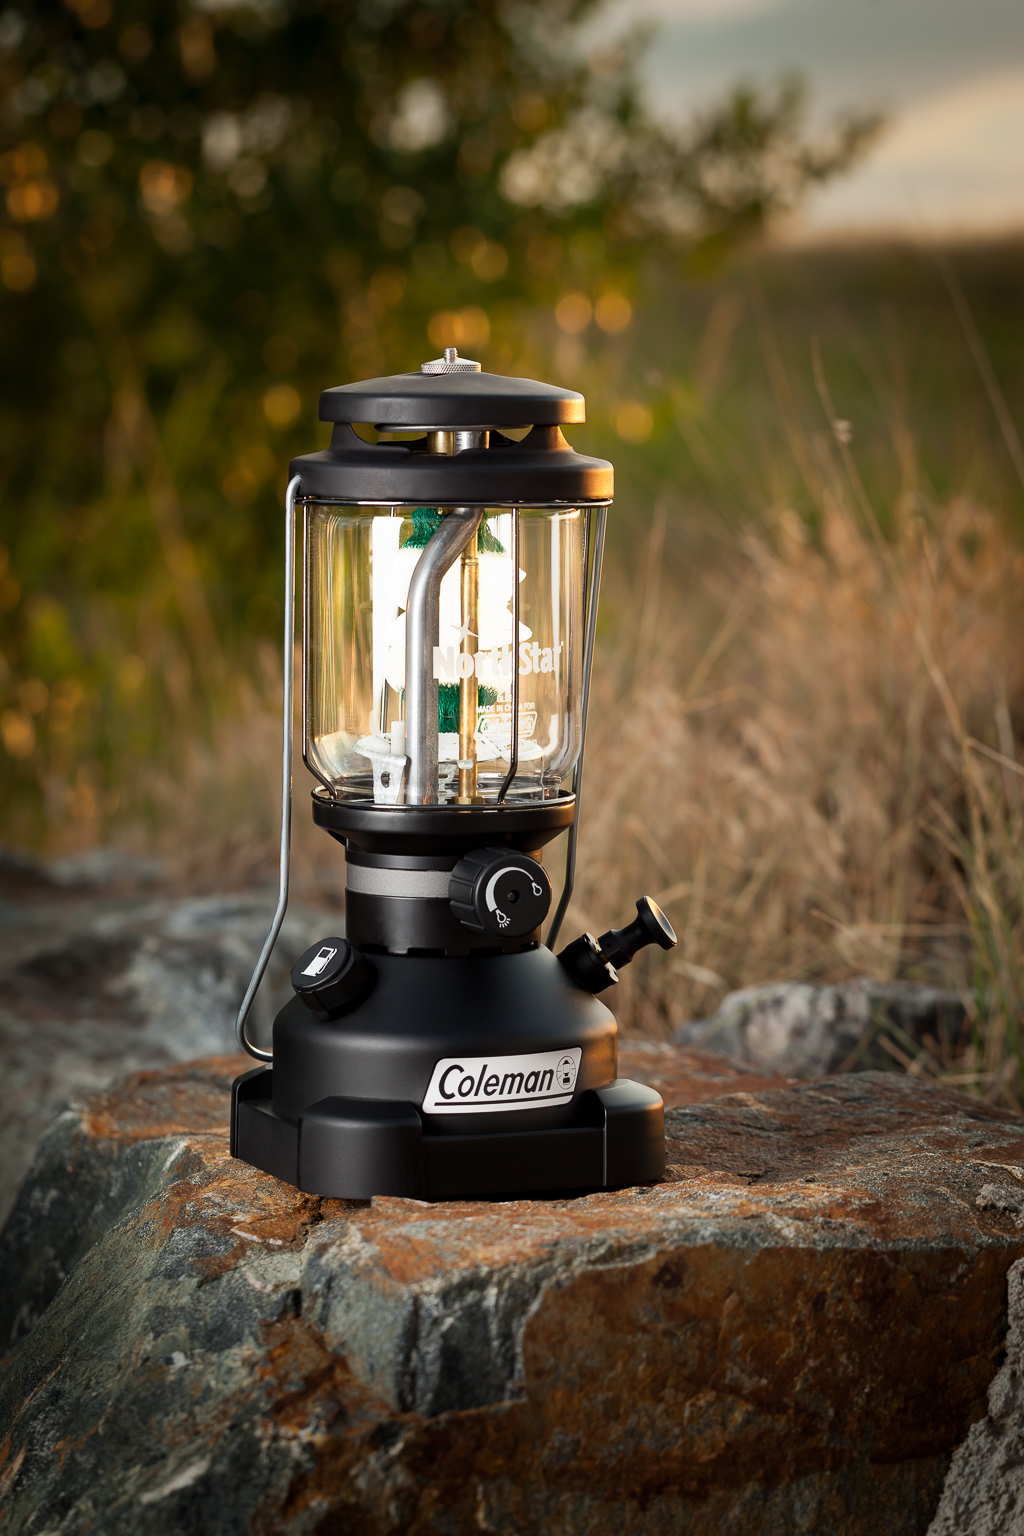 A styled hero product shot of a Coleman lantern photographed in studio for advertising, print collateral, and product packaging